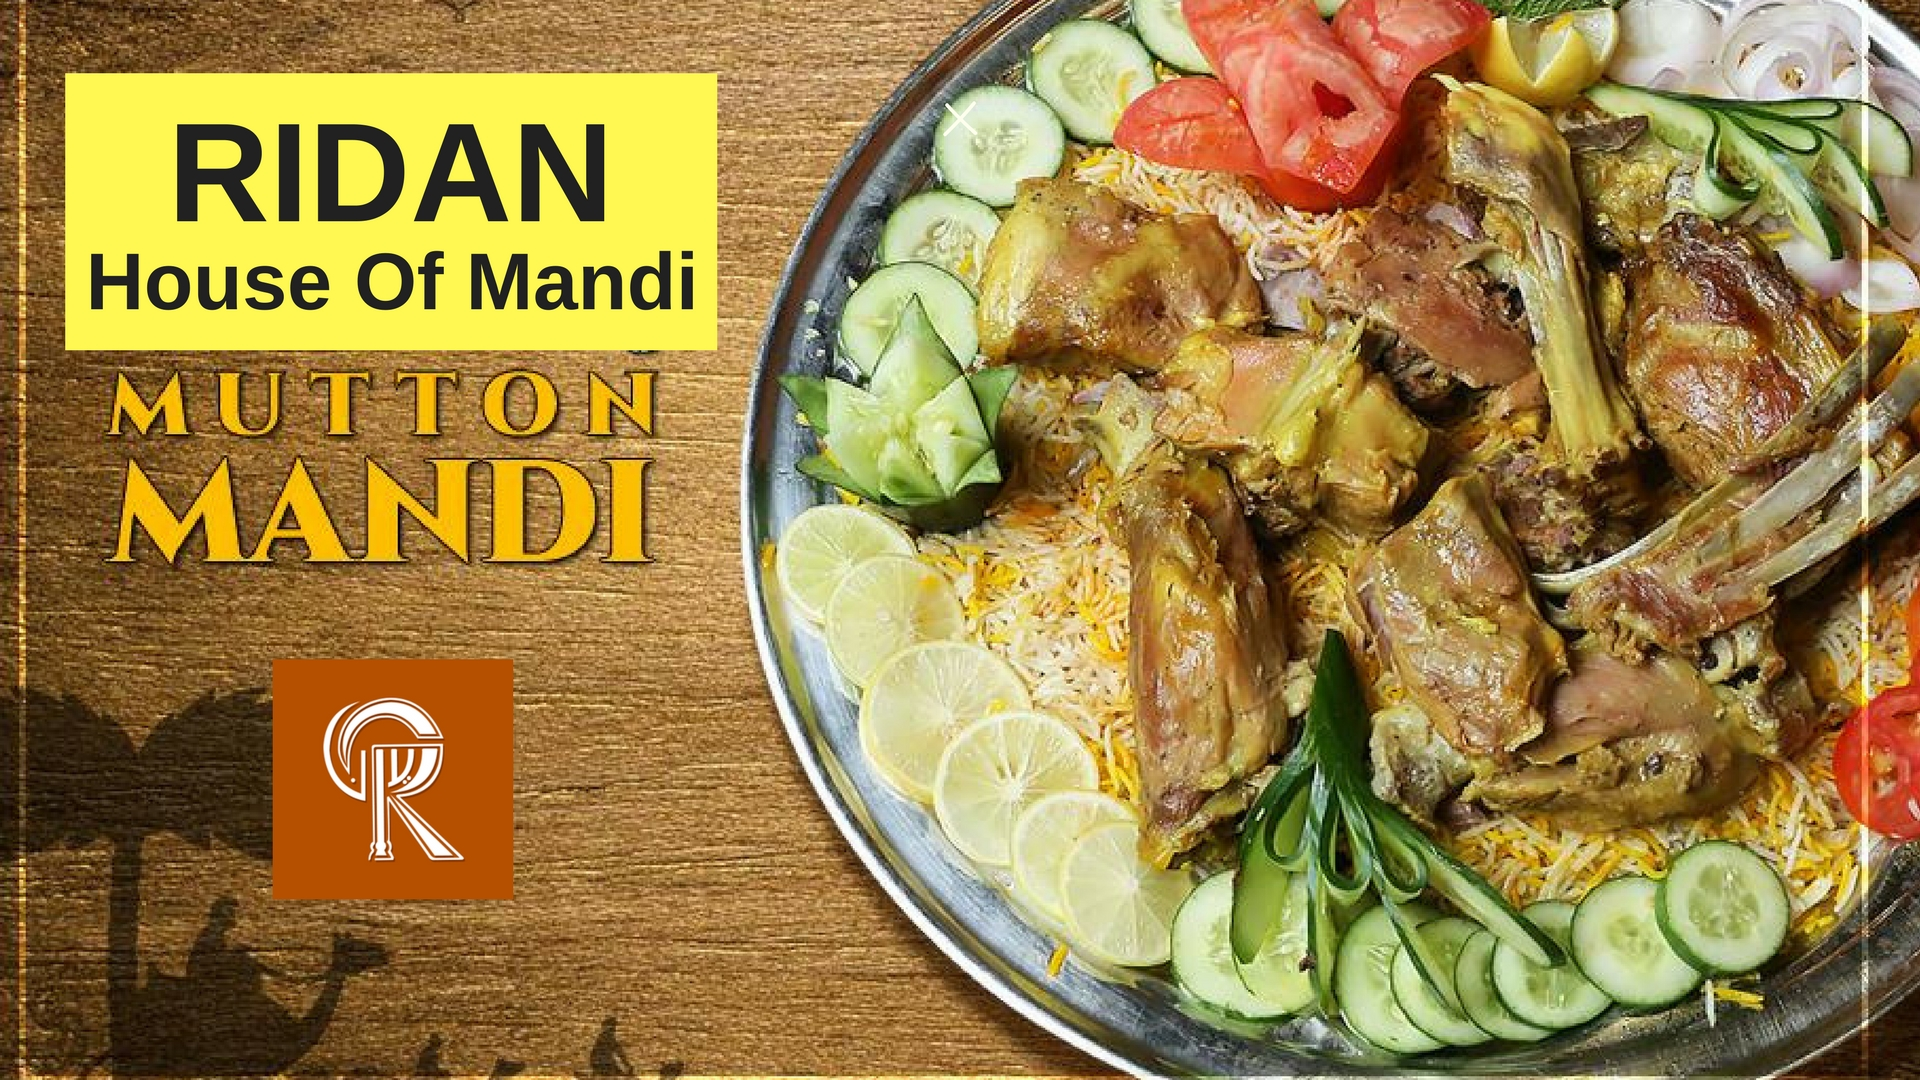 Mnadi served at ridan house of mandi